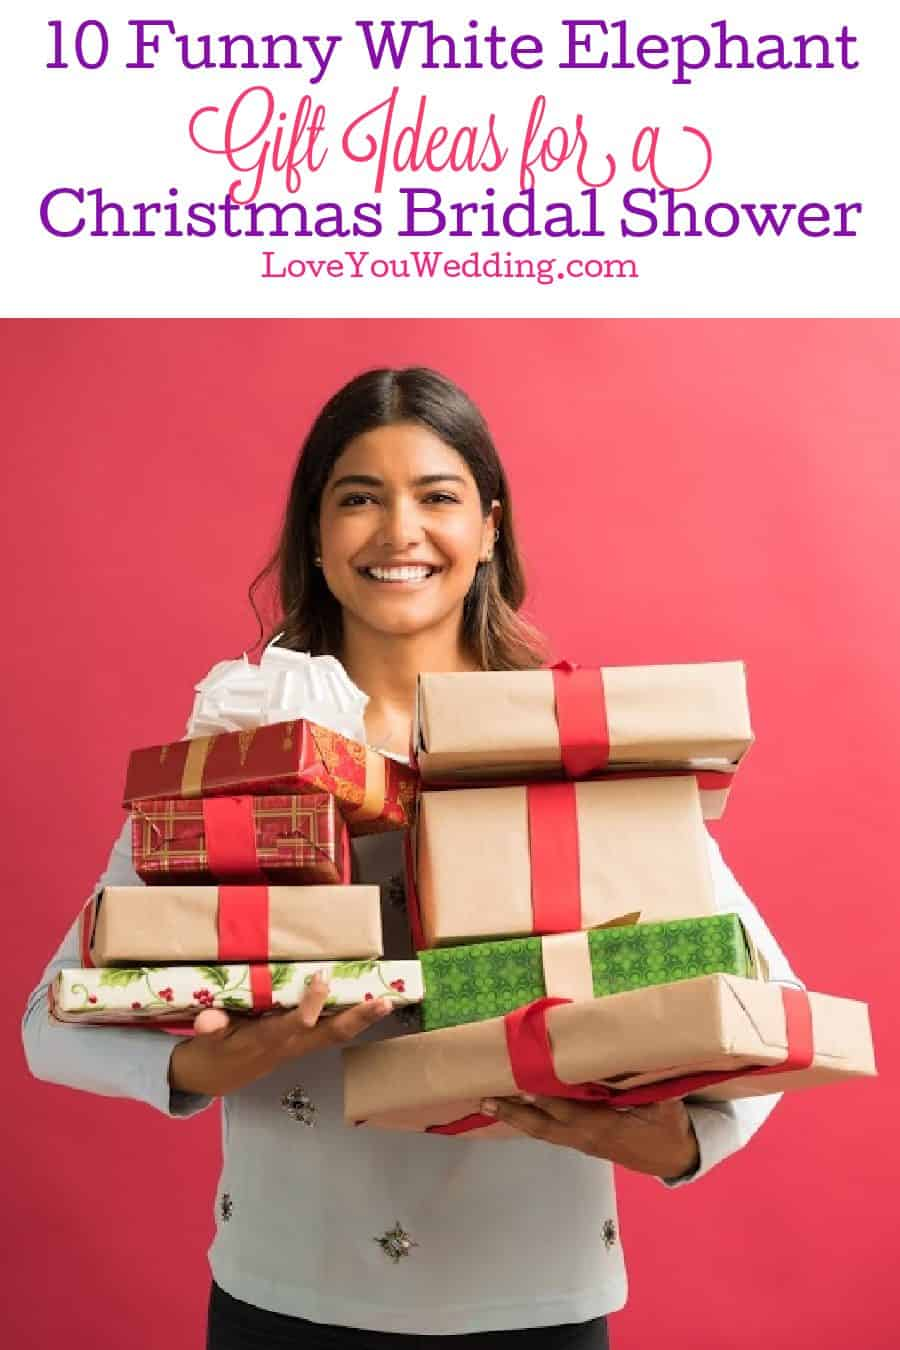 10 Funny White Elephant Gift Ideas For Christmas Themed Bridal Shower Love You Wedding